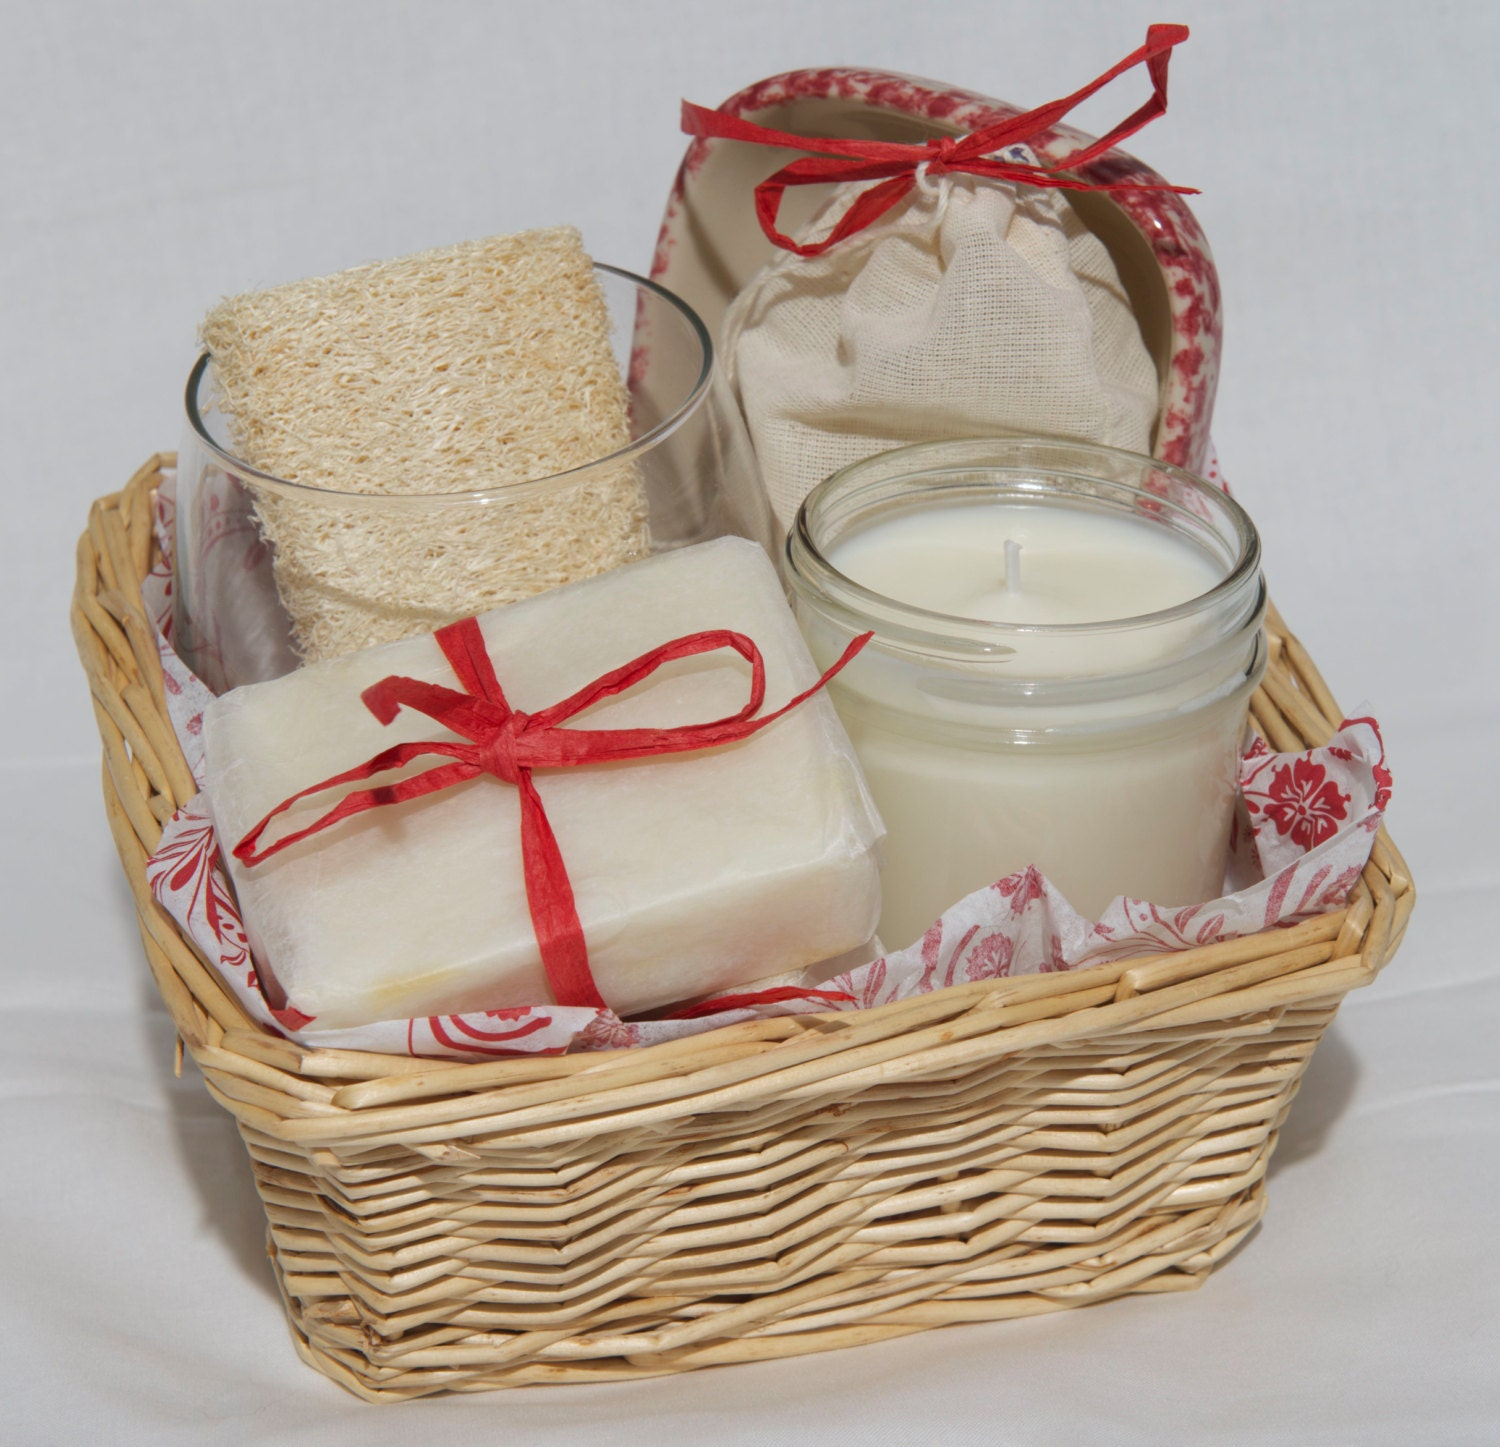 Handmade Soap Baskets : Valentine soap spa gift set basket soy candle and